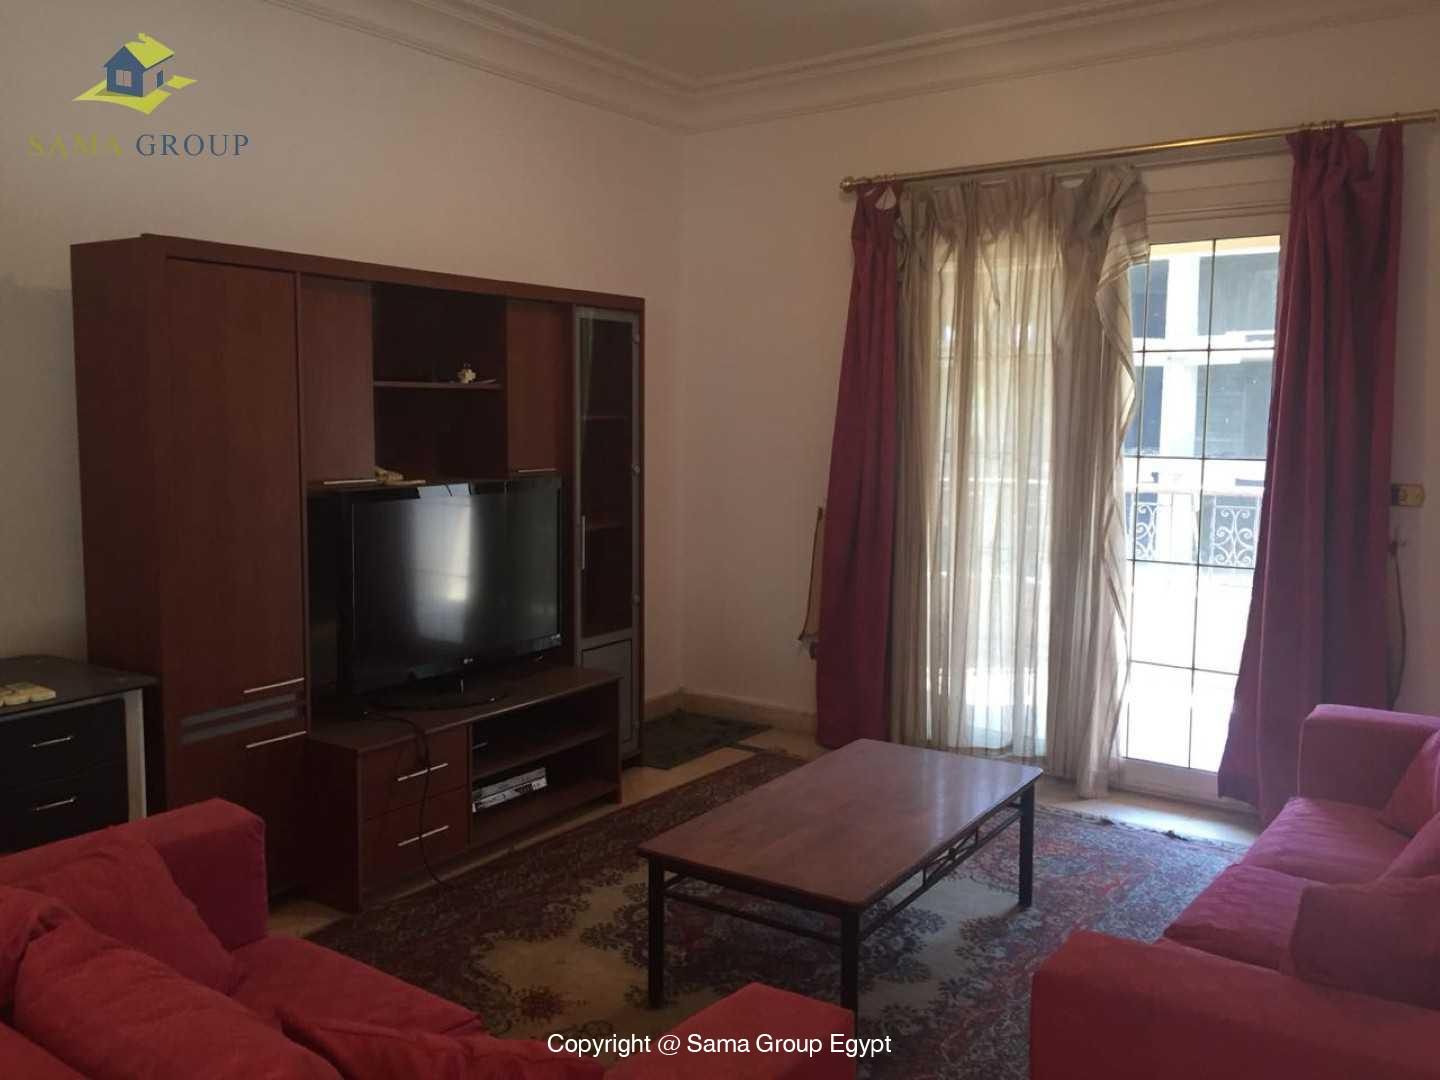 Furnished Apartment For Rent In Maadi Sarayat,Furnished,Apartment NO #17